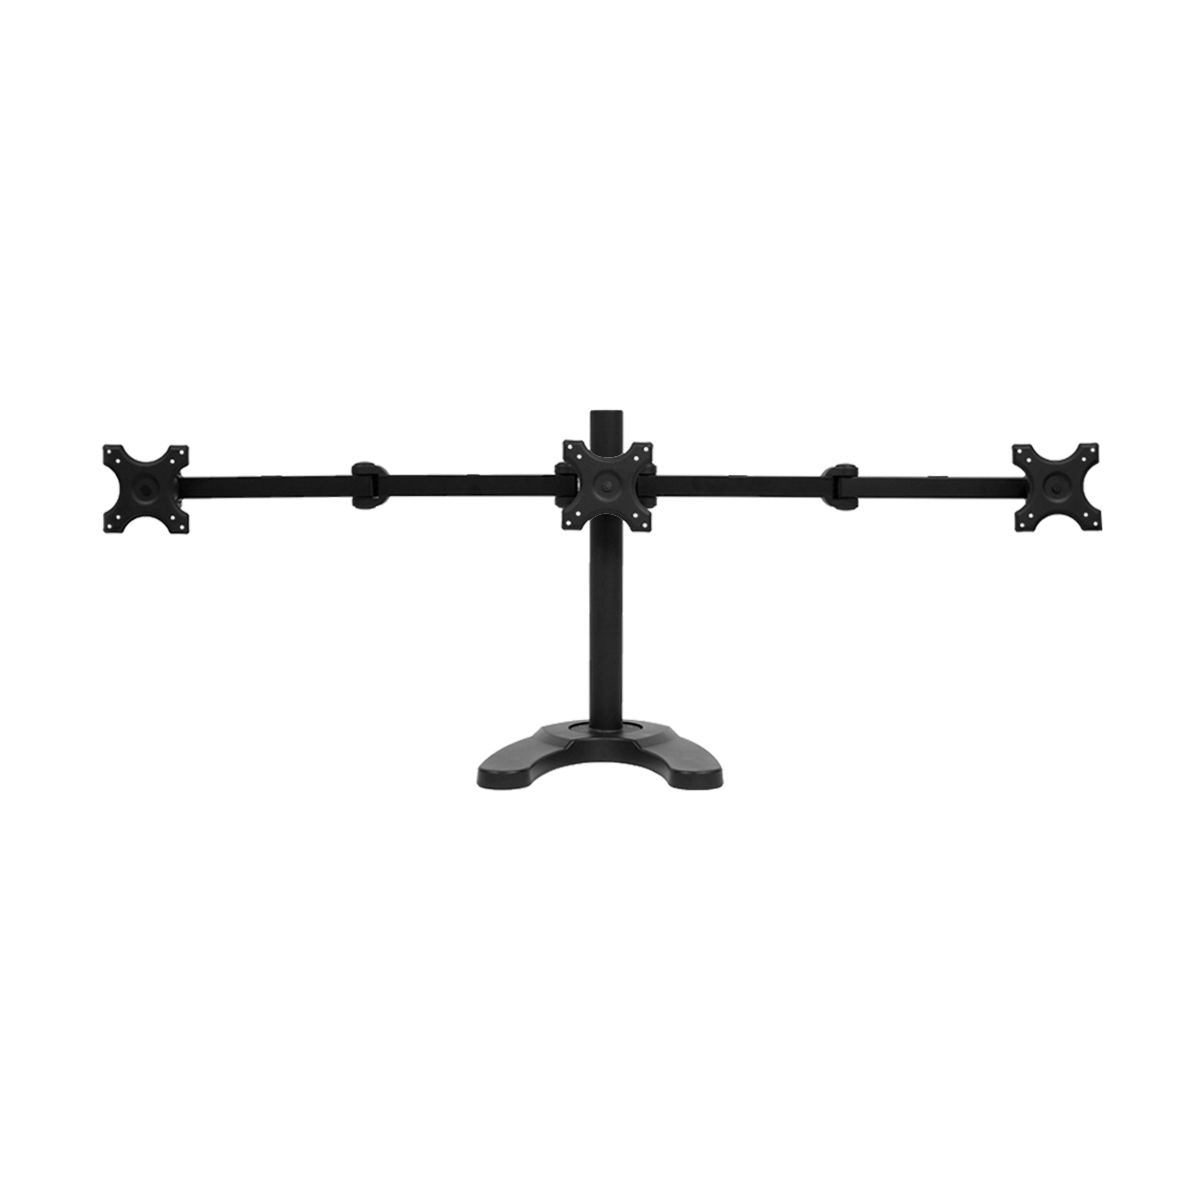 triple lcd monitor desk stand mount free standing adjustable 3 screens upto 24 ebay. Black Bedroom Furniture Sets. Home Design Ideas